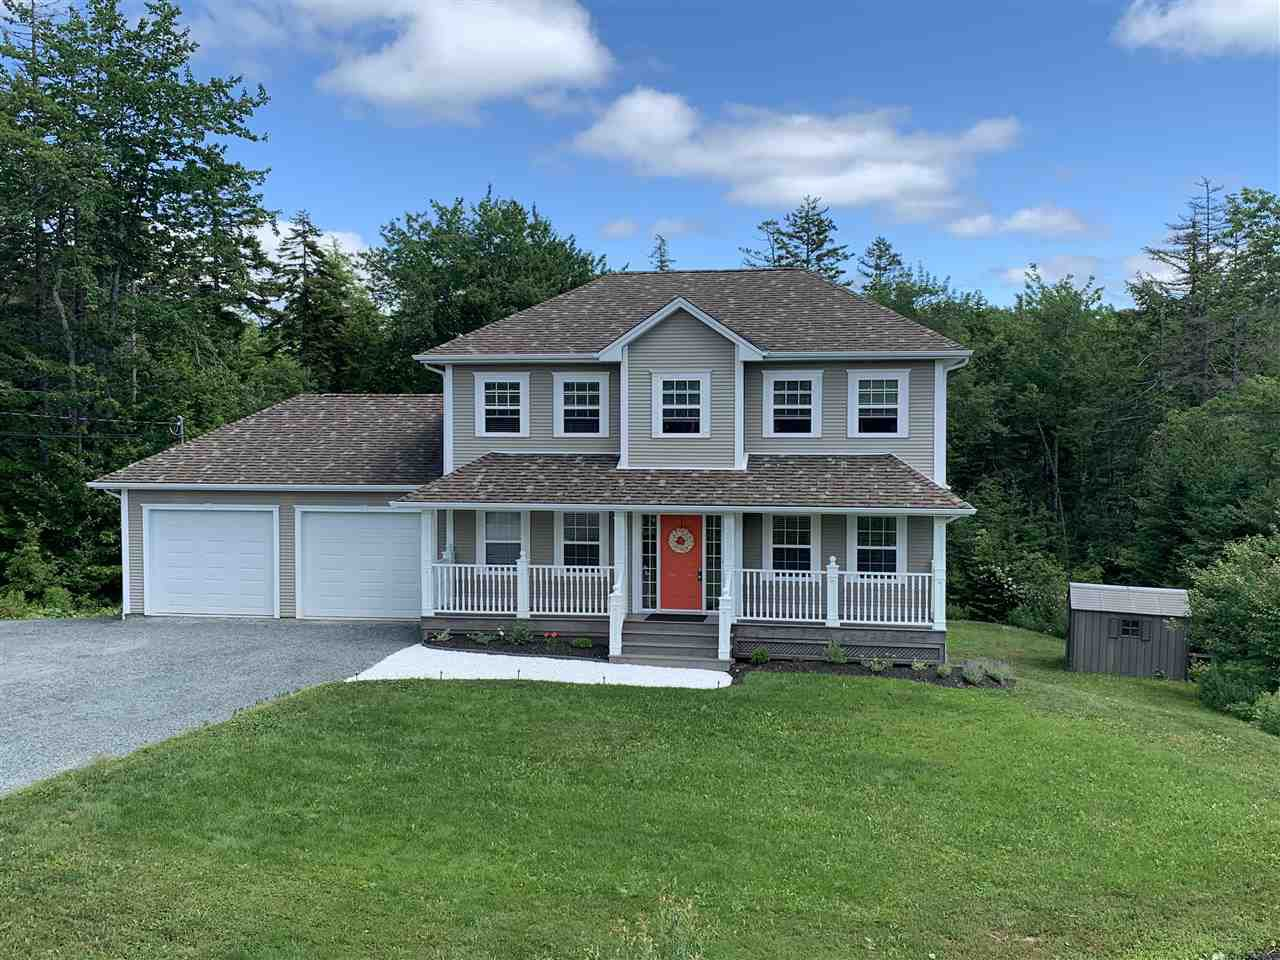 Main Photo: 235 Capilano Drive in Windsor Junction: 30-Waverley, Fall River, Oakfield Residential for sale (Halifax-Dartmouth)  : MLS®# 202008873